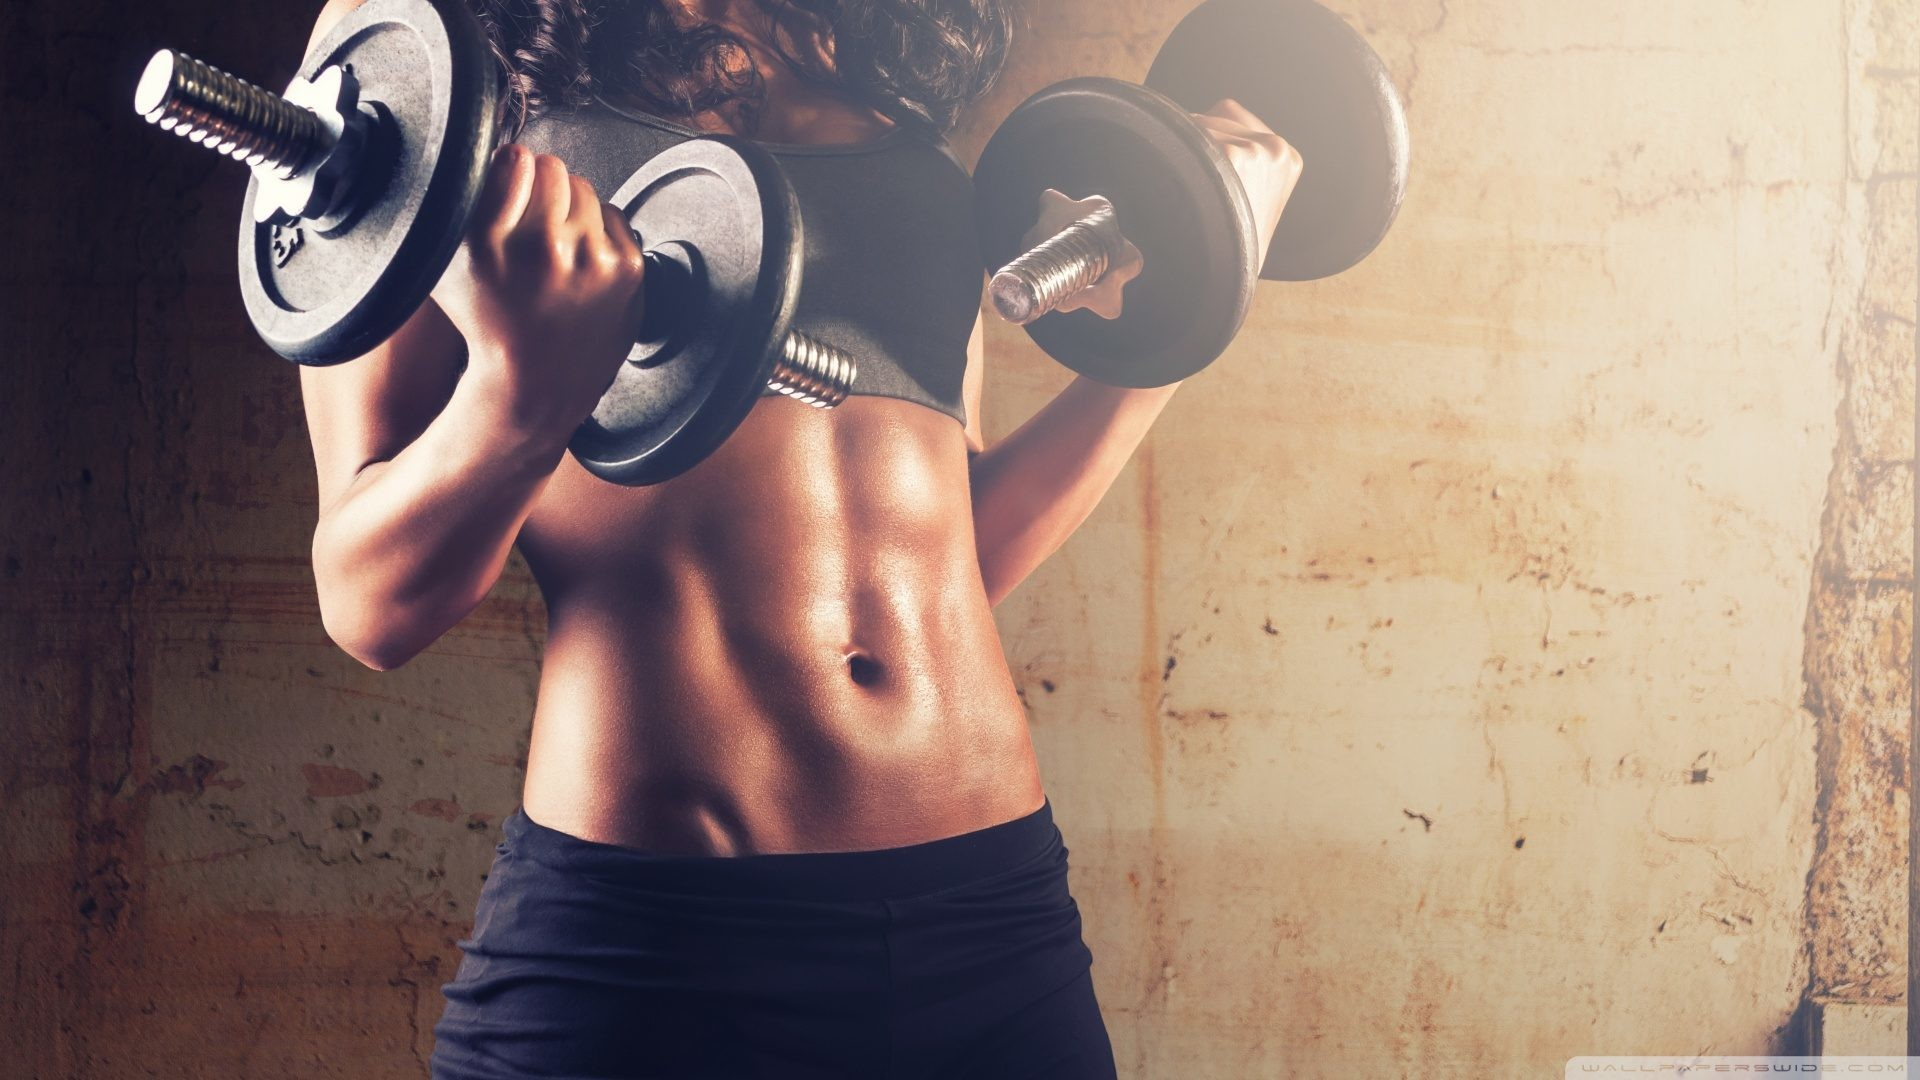 Gym Workout Hd Wallpapers